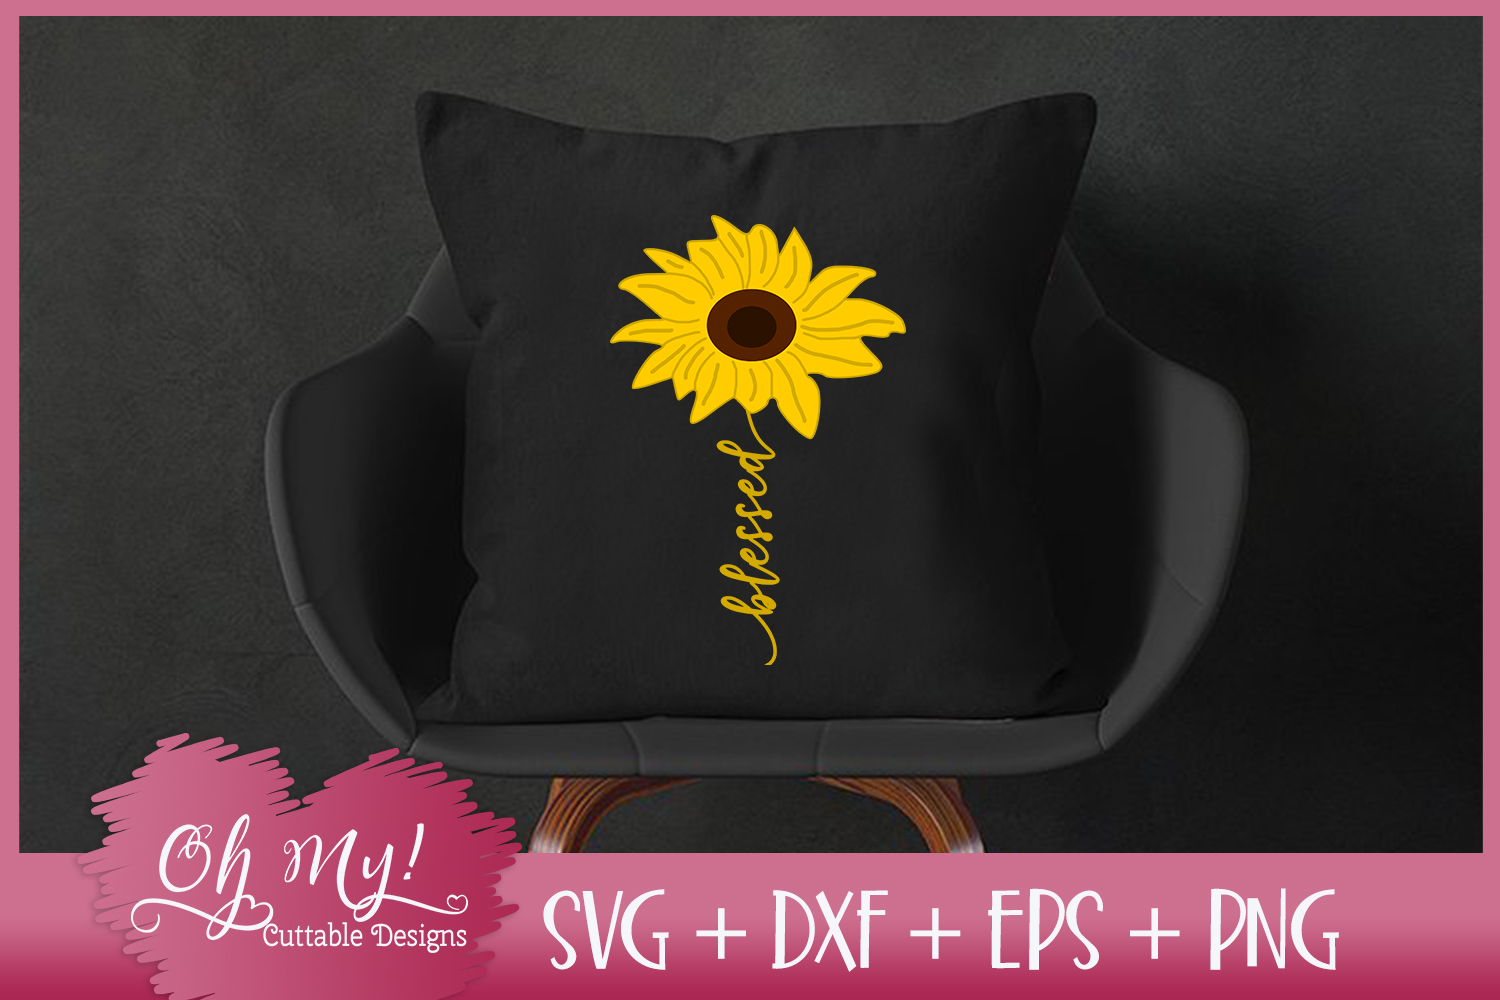 Blessed Sunflower - SVG EPS DXF PNG Cutting File example image 1